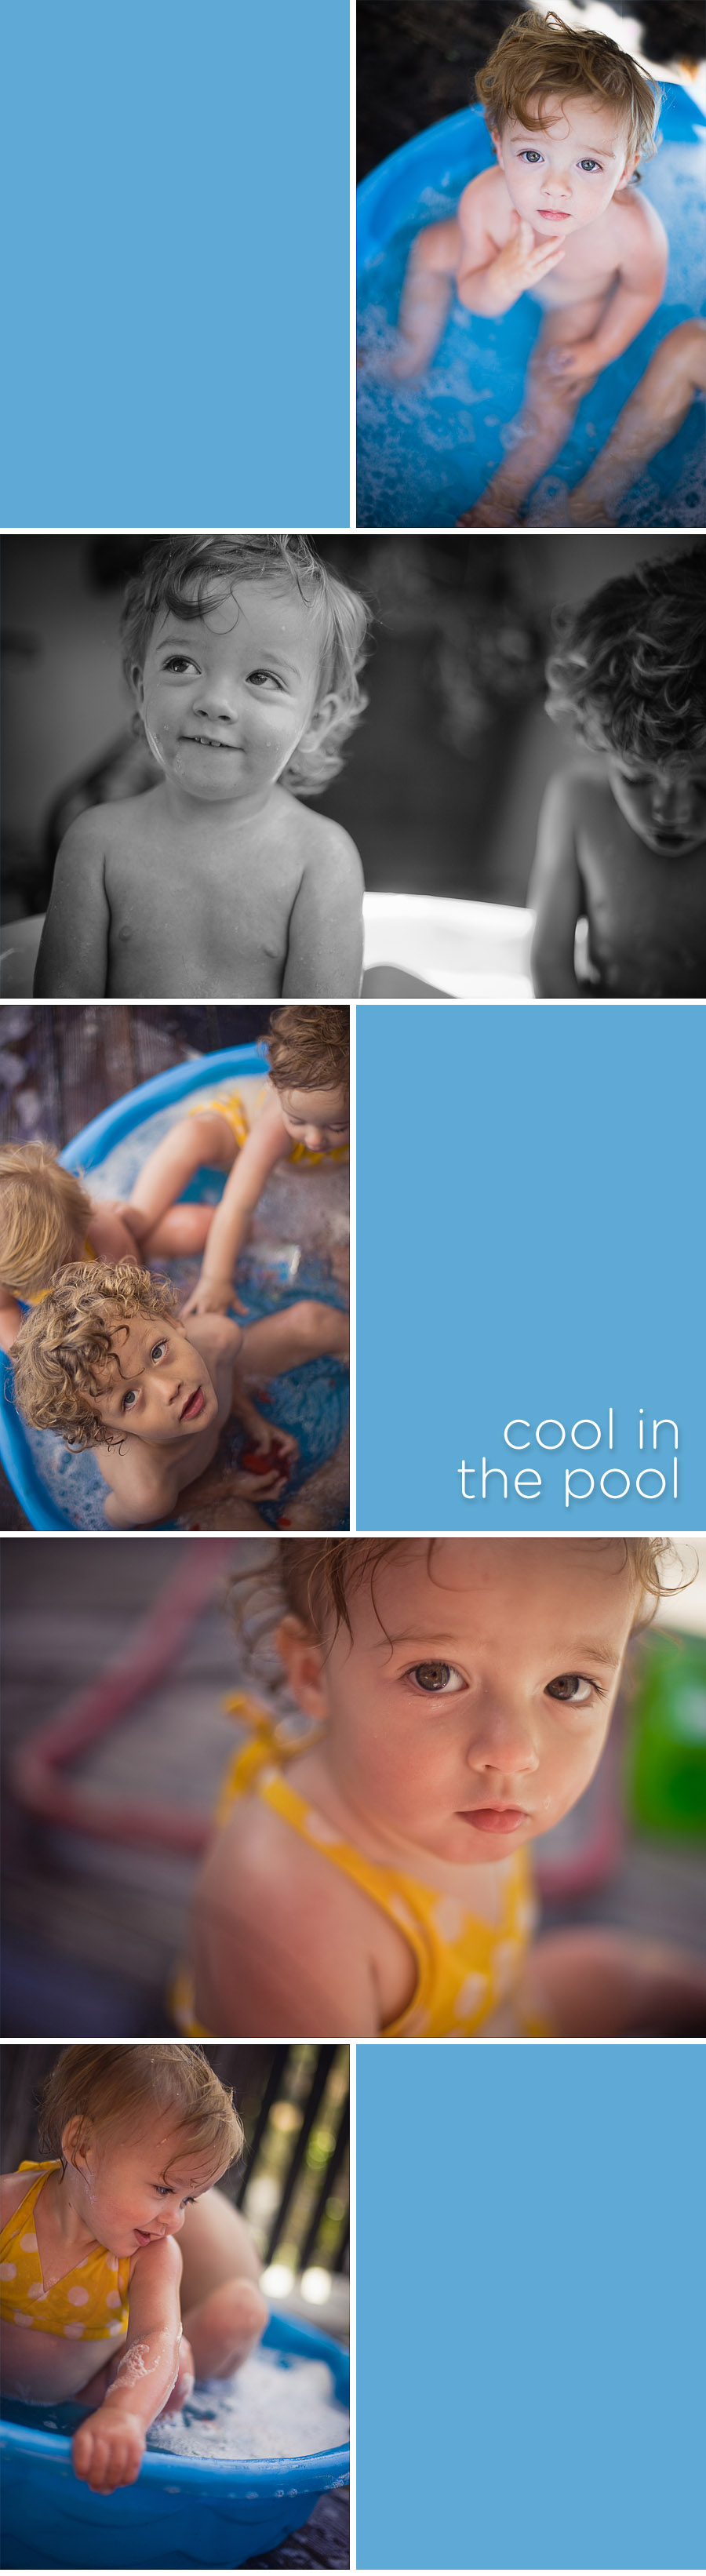 Cool in the Pool - summertime candids by Gillian Crane, Laguna Beach photographer